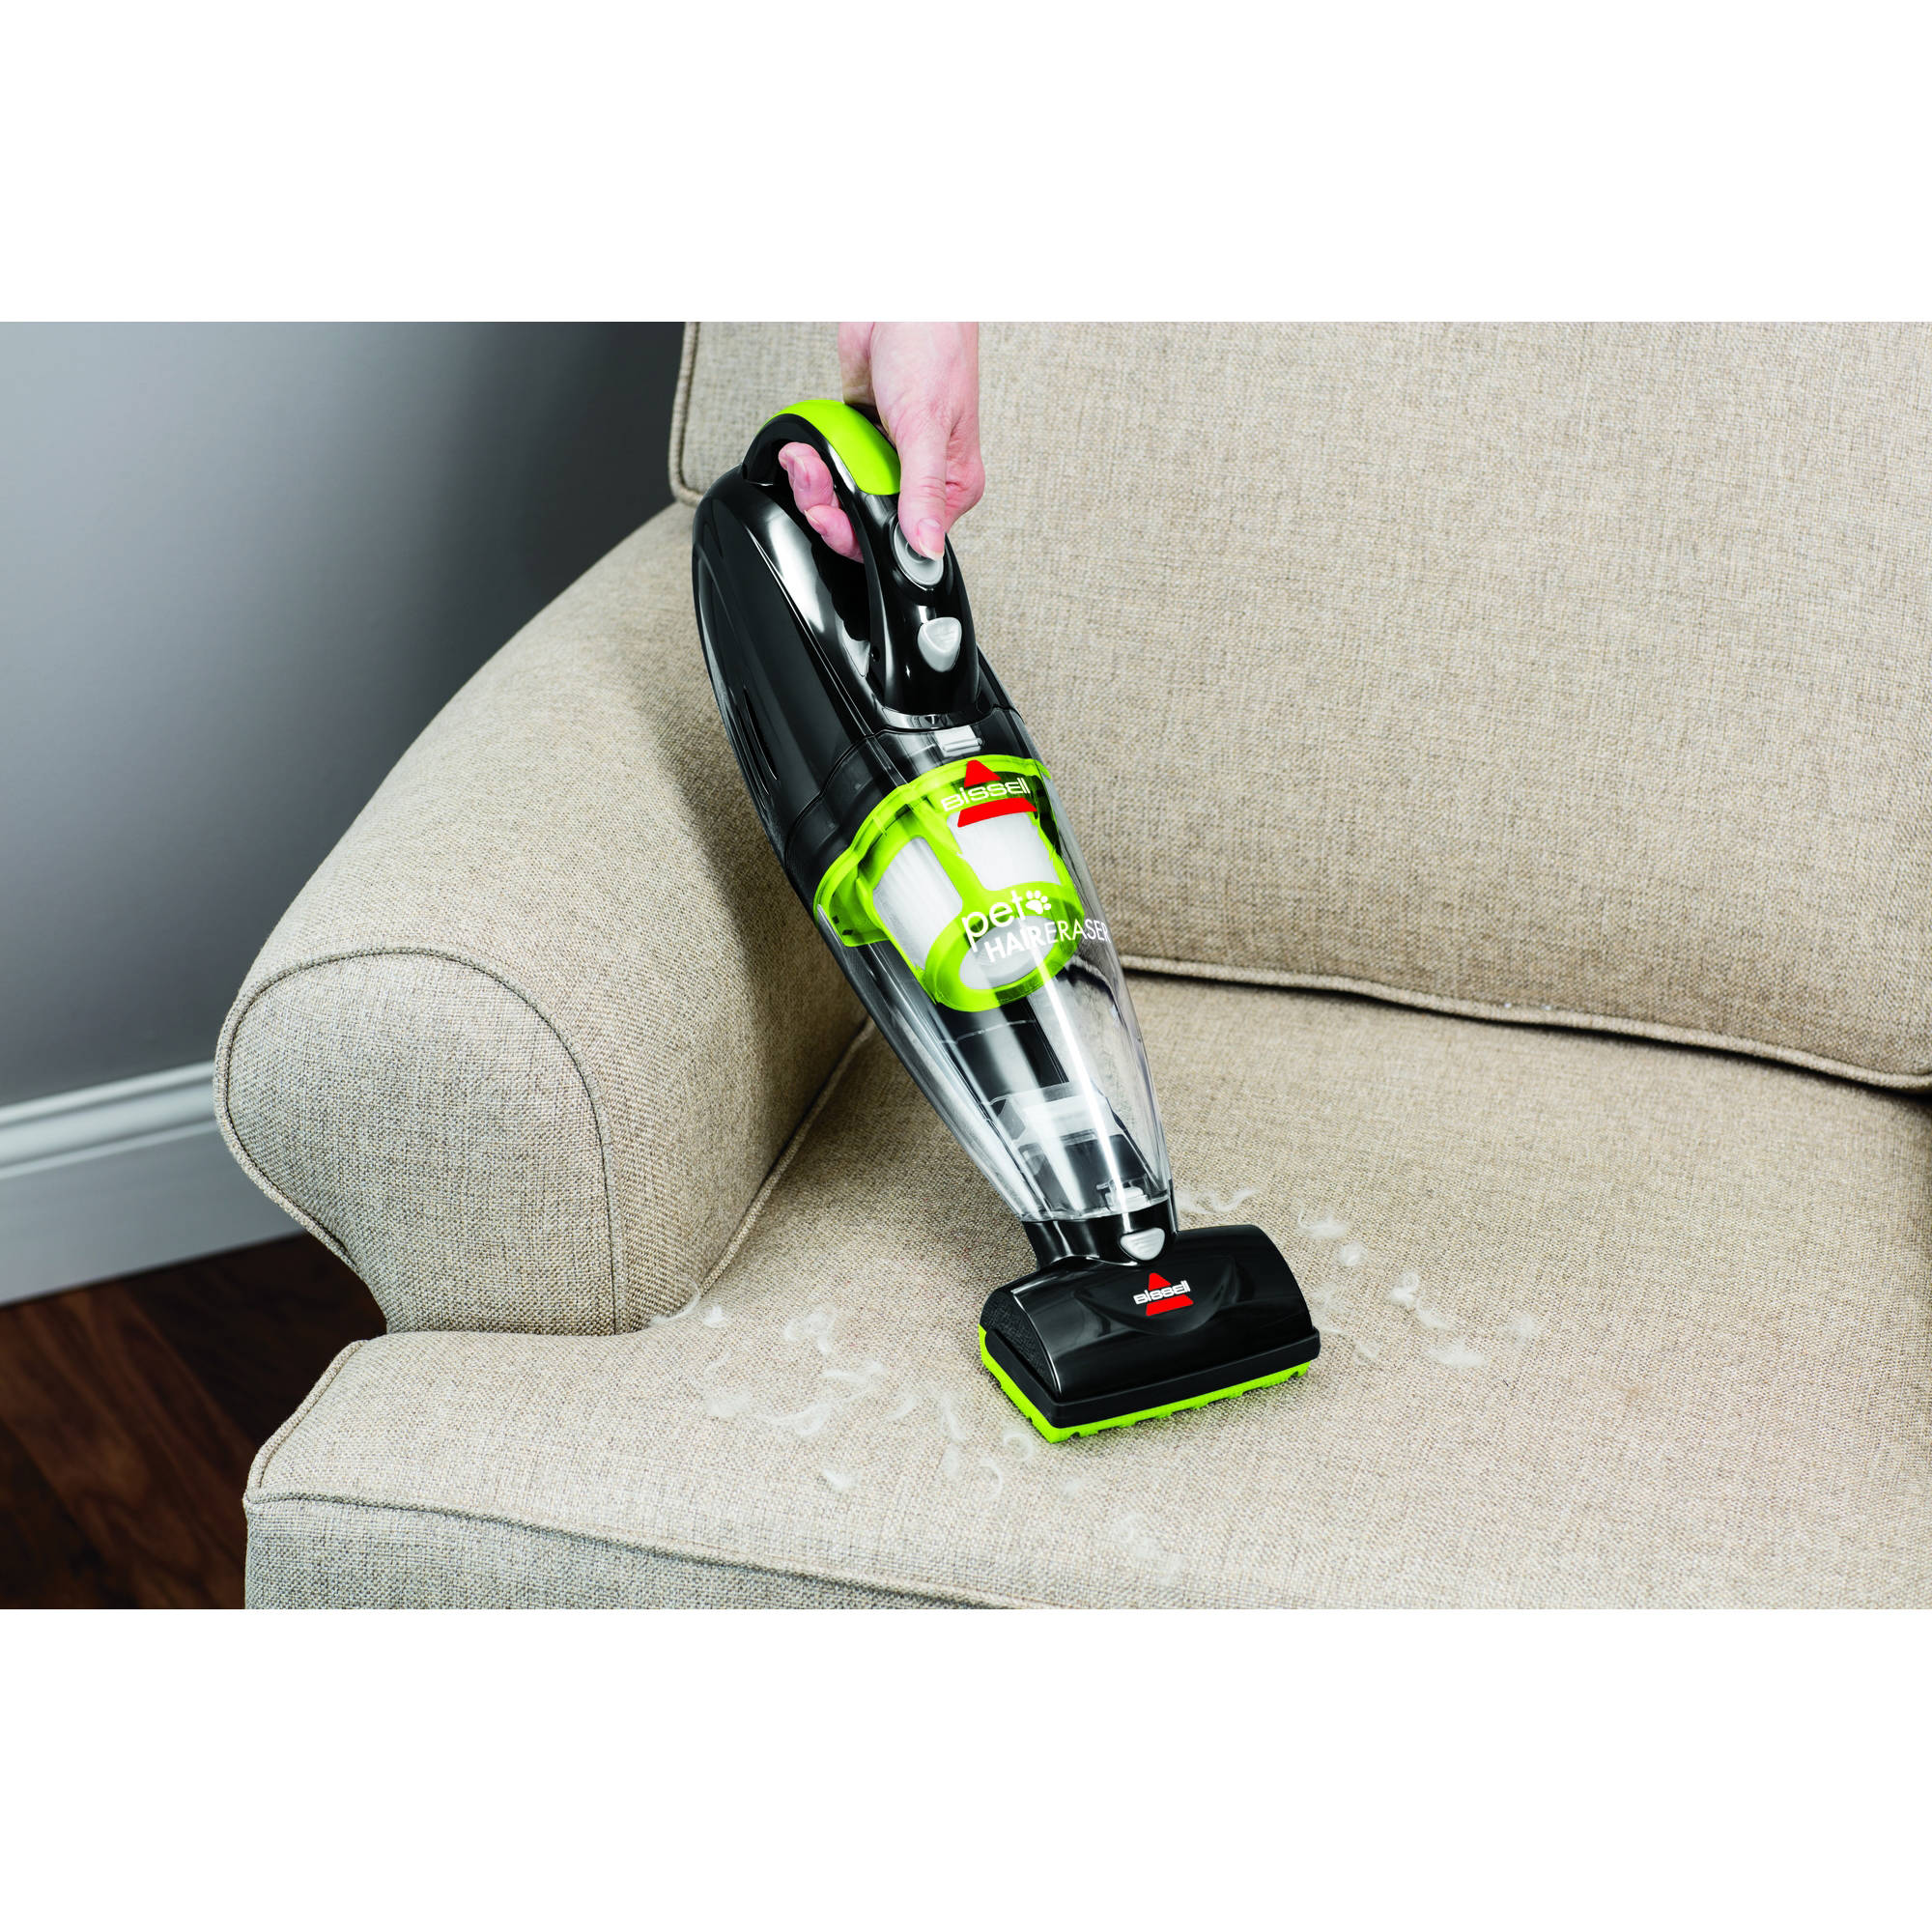 new bissell pet hair eraser cordless hand vacuum 1782 ebay. Black Bedroom Furniture Sets. Home Design Ideas